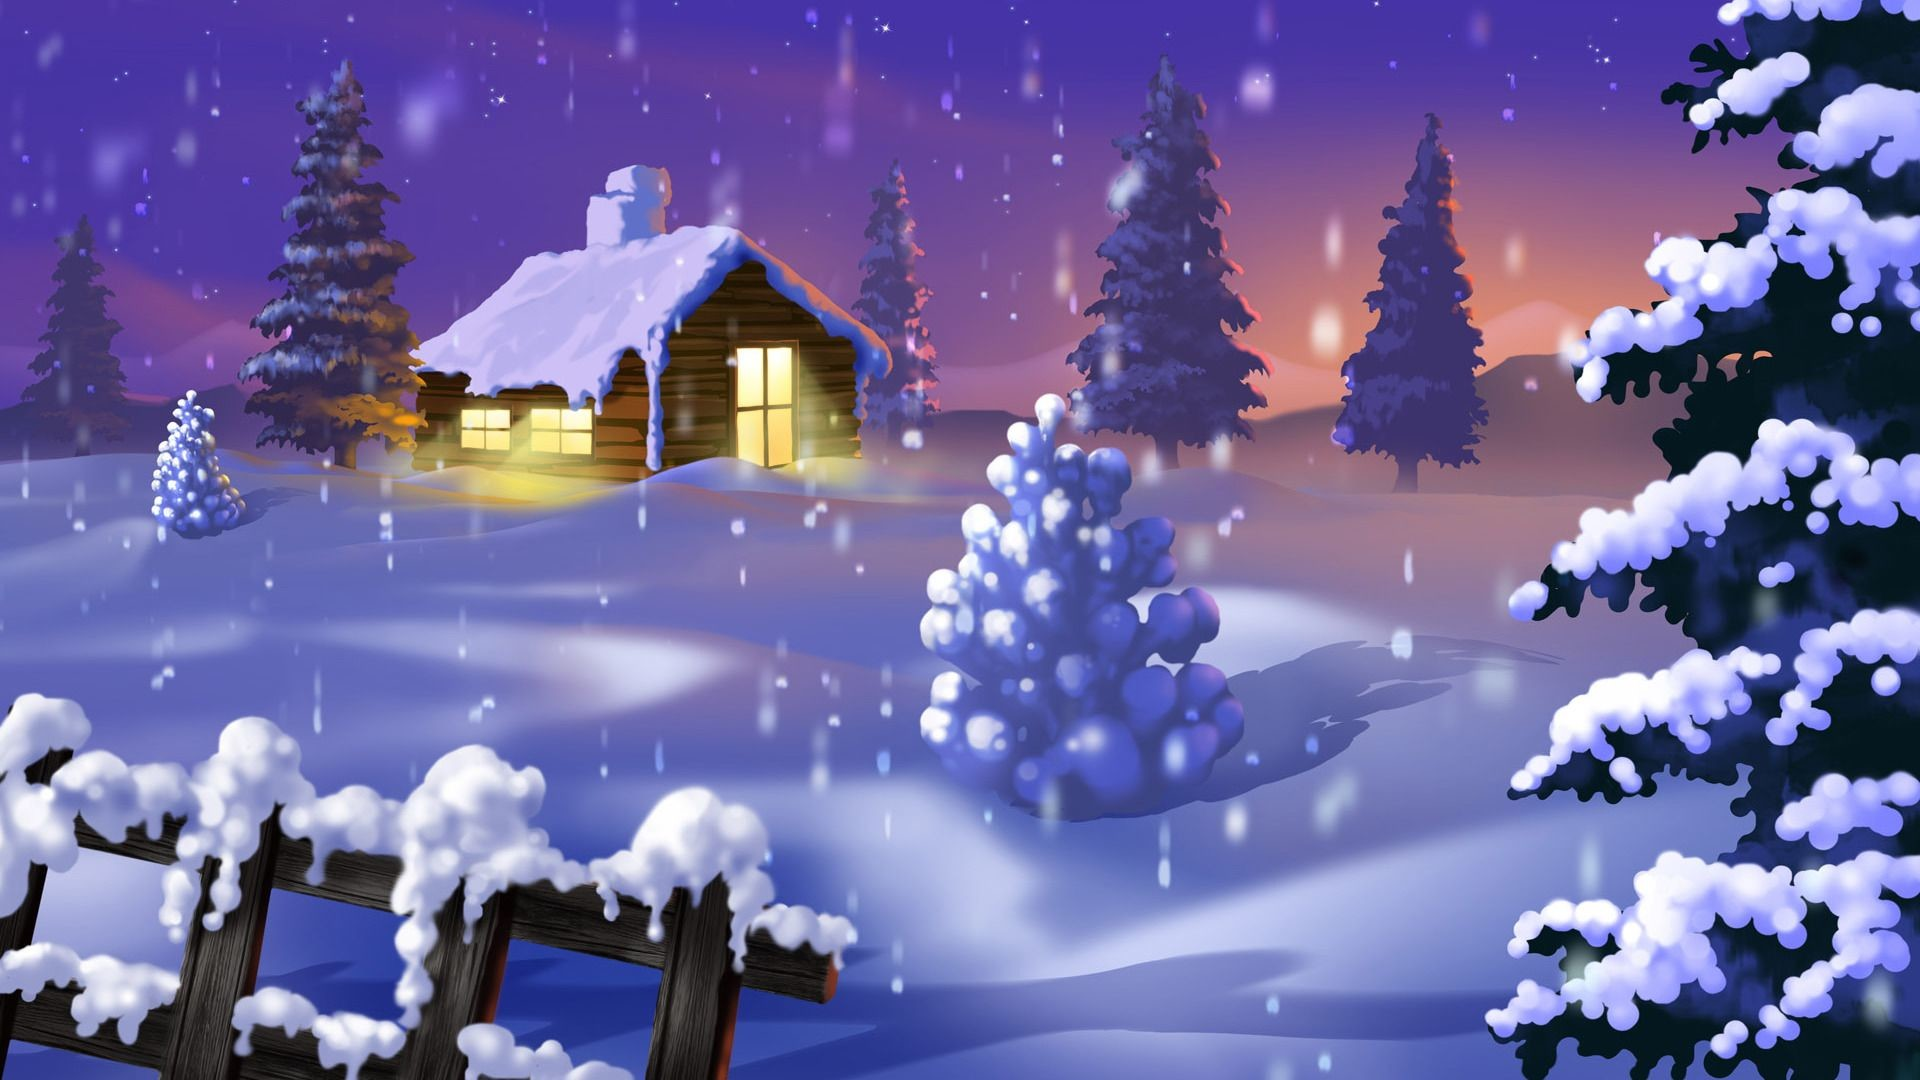 Falling Snow Live Wallpaper For Iphone Winter Wonderland Background 44 Images